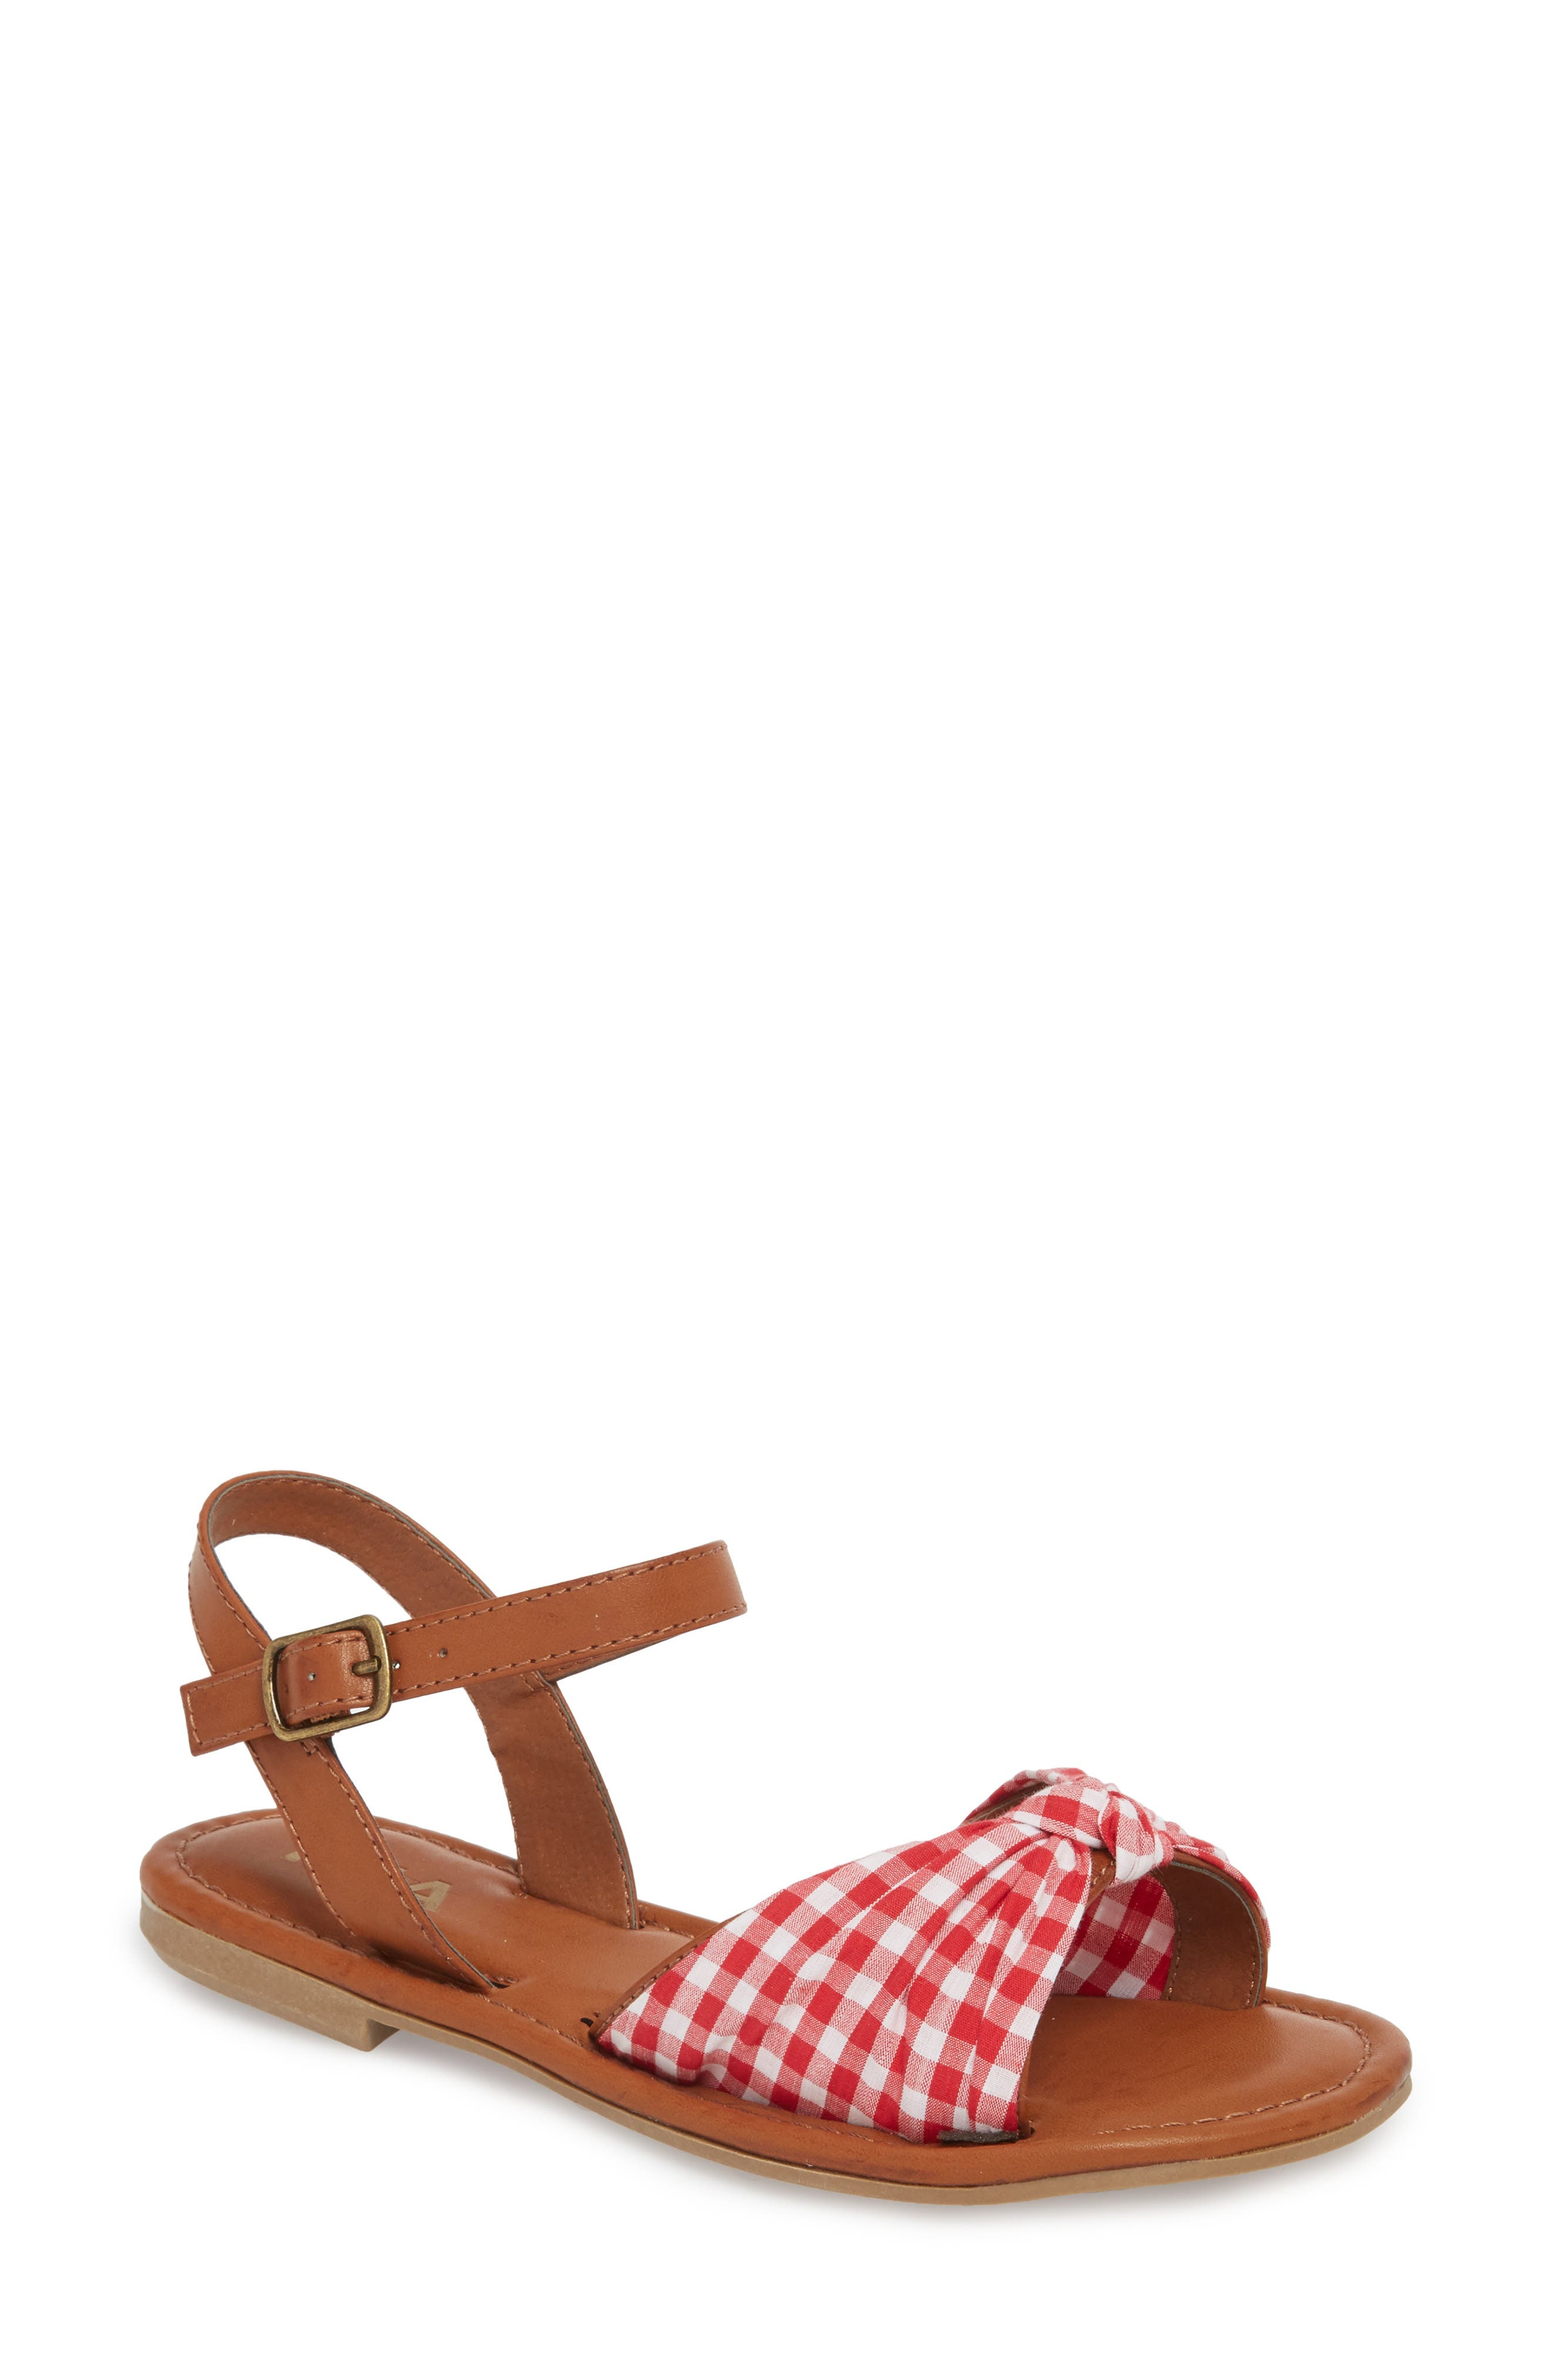 Neala Bow Sandal,                             Main thumbnail 1, color,                             Red/ White Fabric